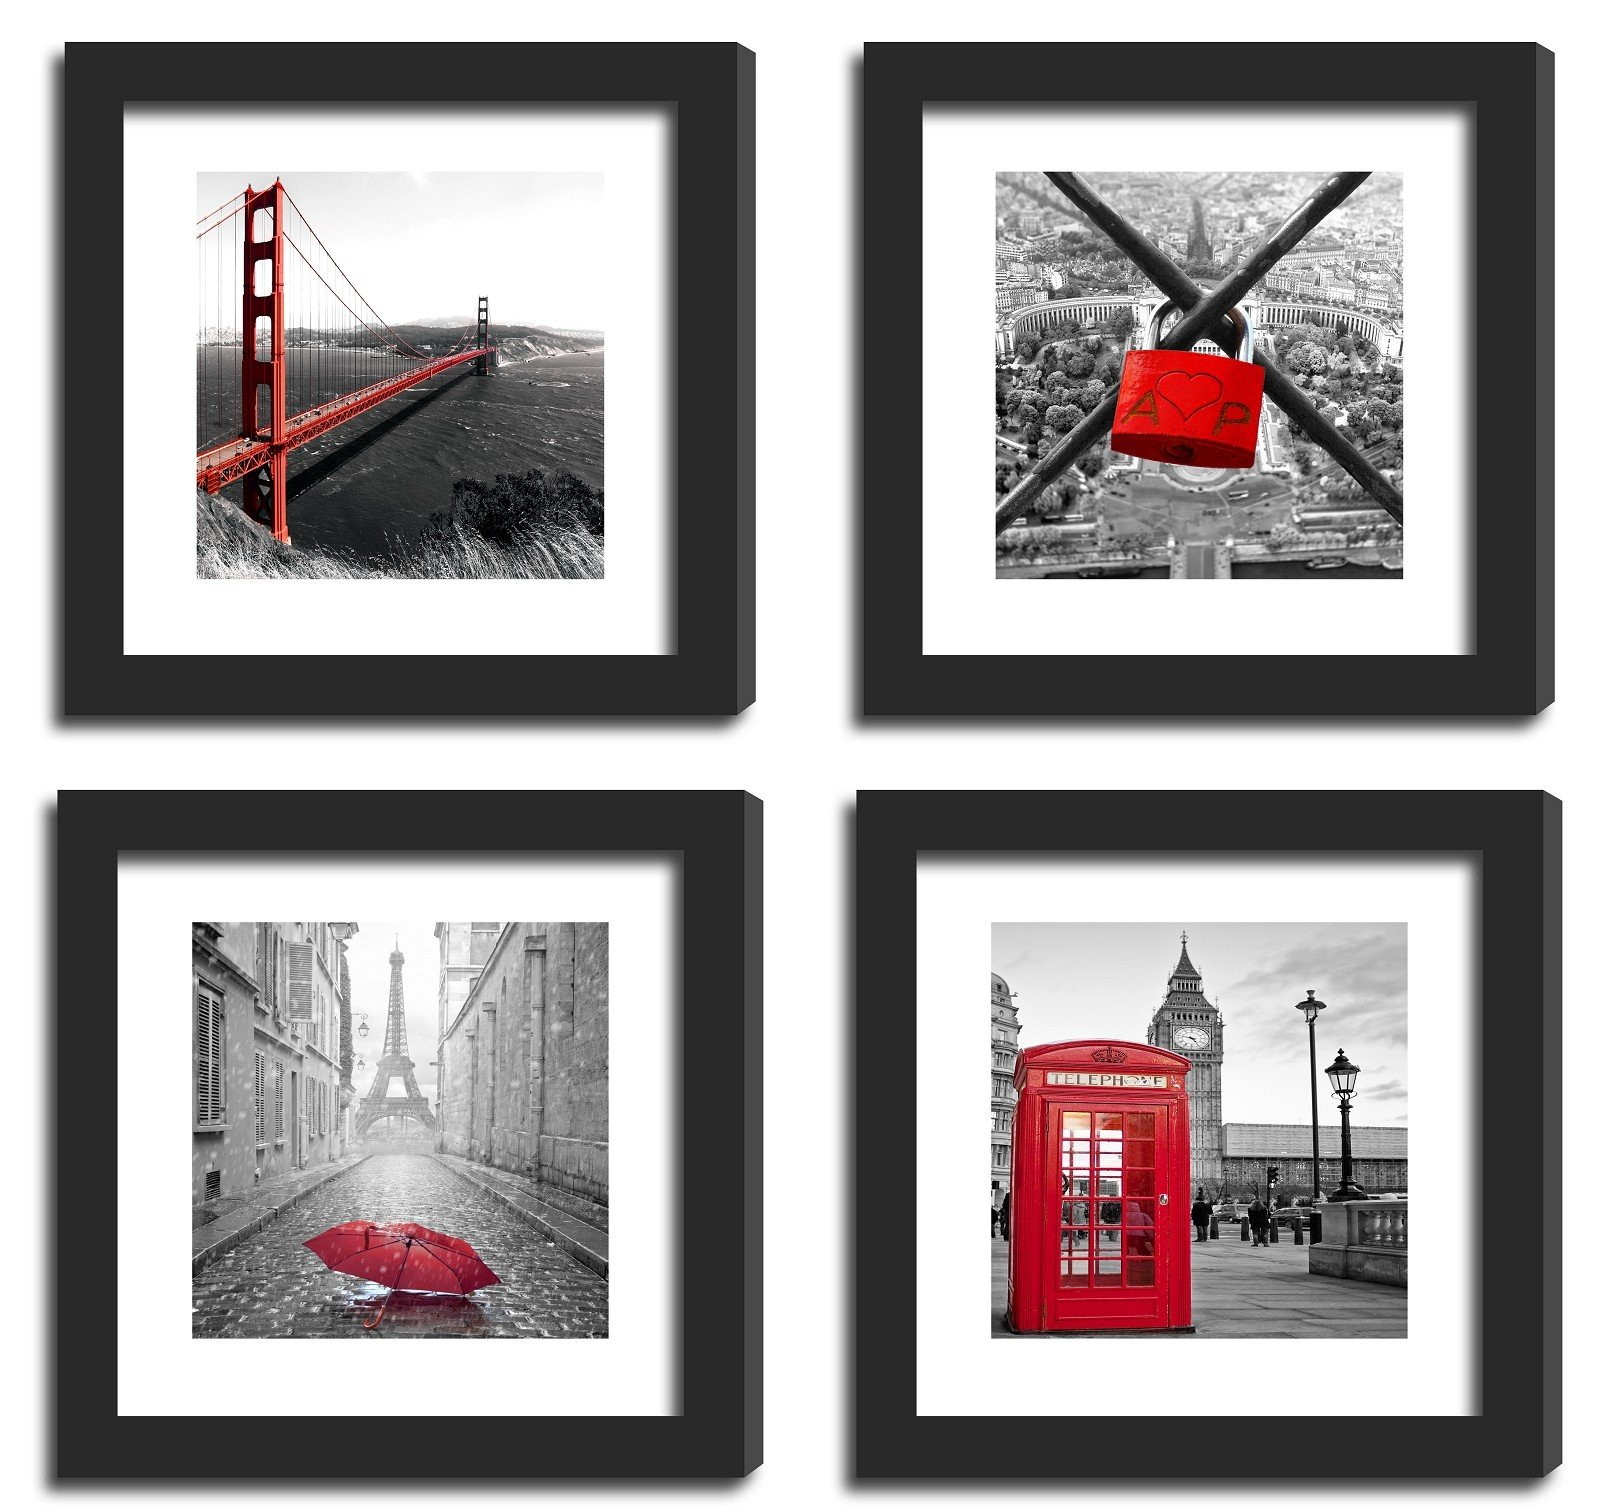 SmartWallStation 4Pcs 11x11 Real Glass Wood Frame Black, with 2X Mat Fit 8x8 4x4 inch Family Kid Photo, Desktop On Wall Office City Red US London Golden Gate Bridge (10 Set Pictures) A by SmartWallStation